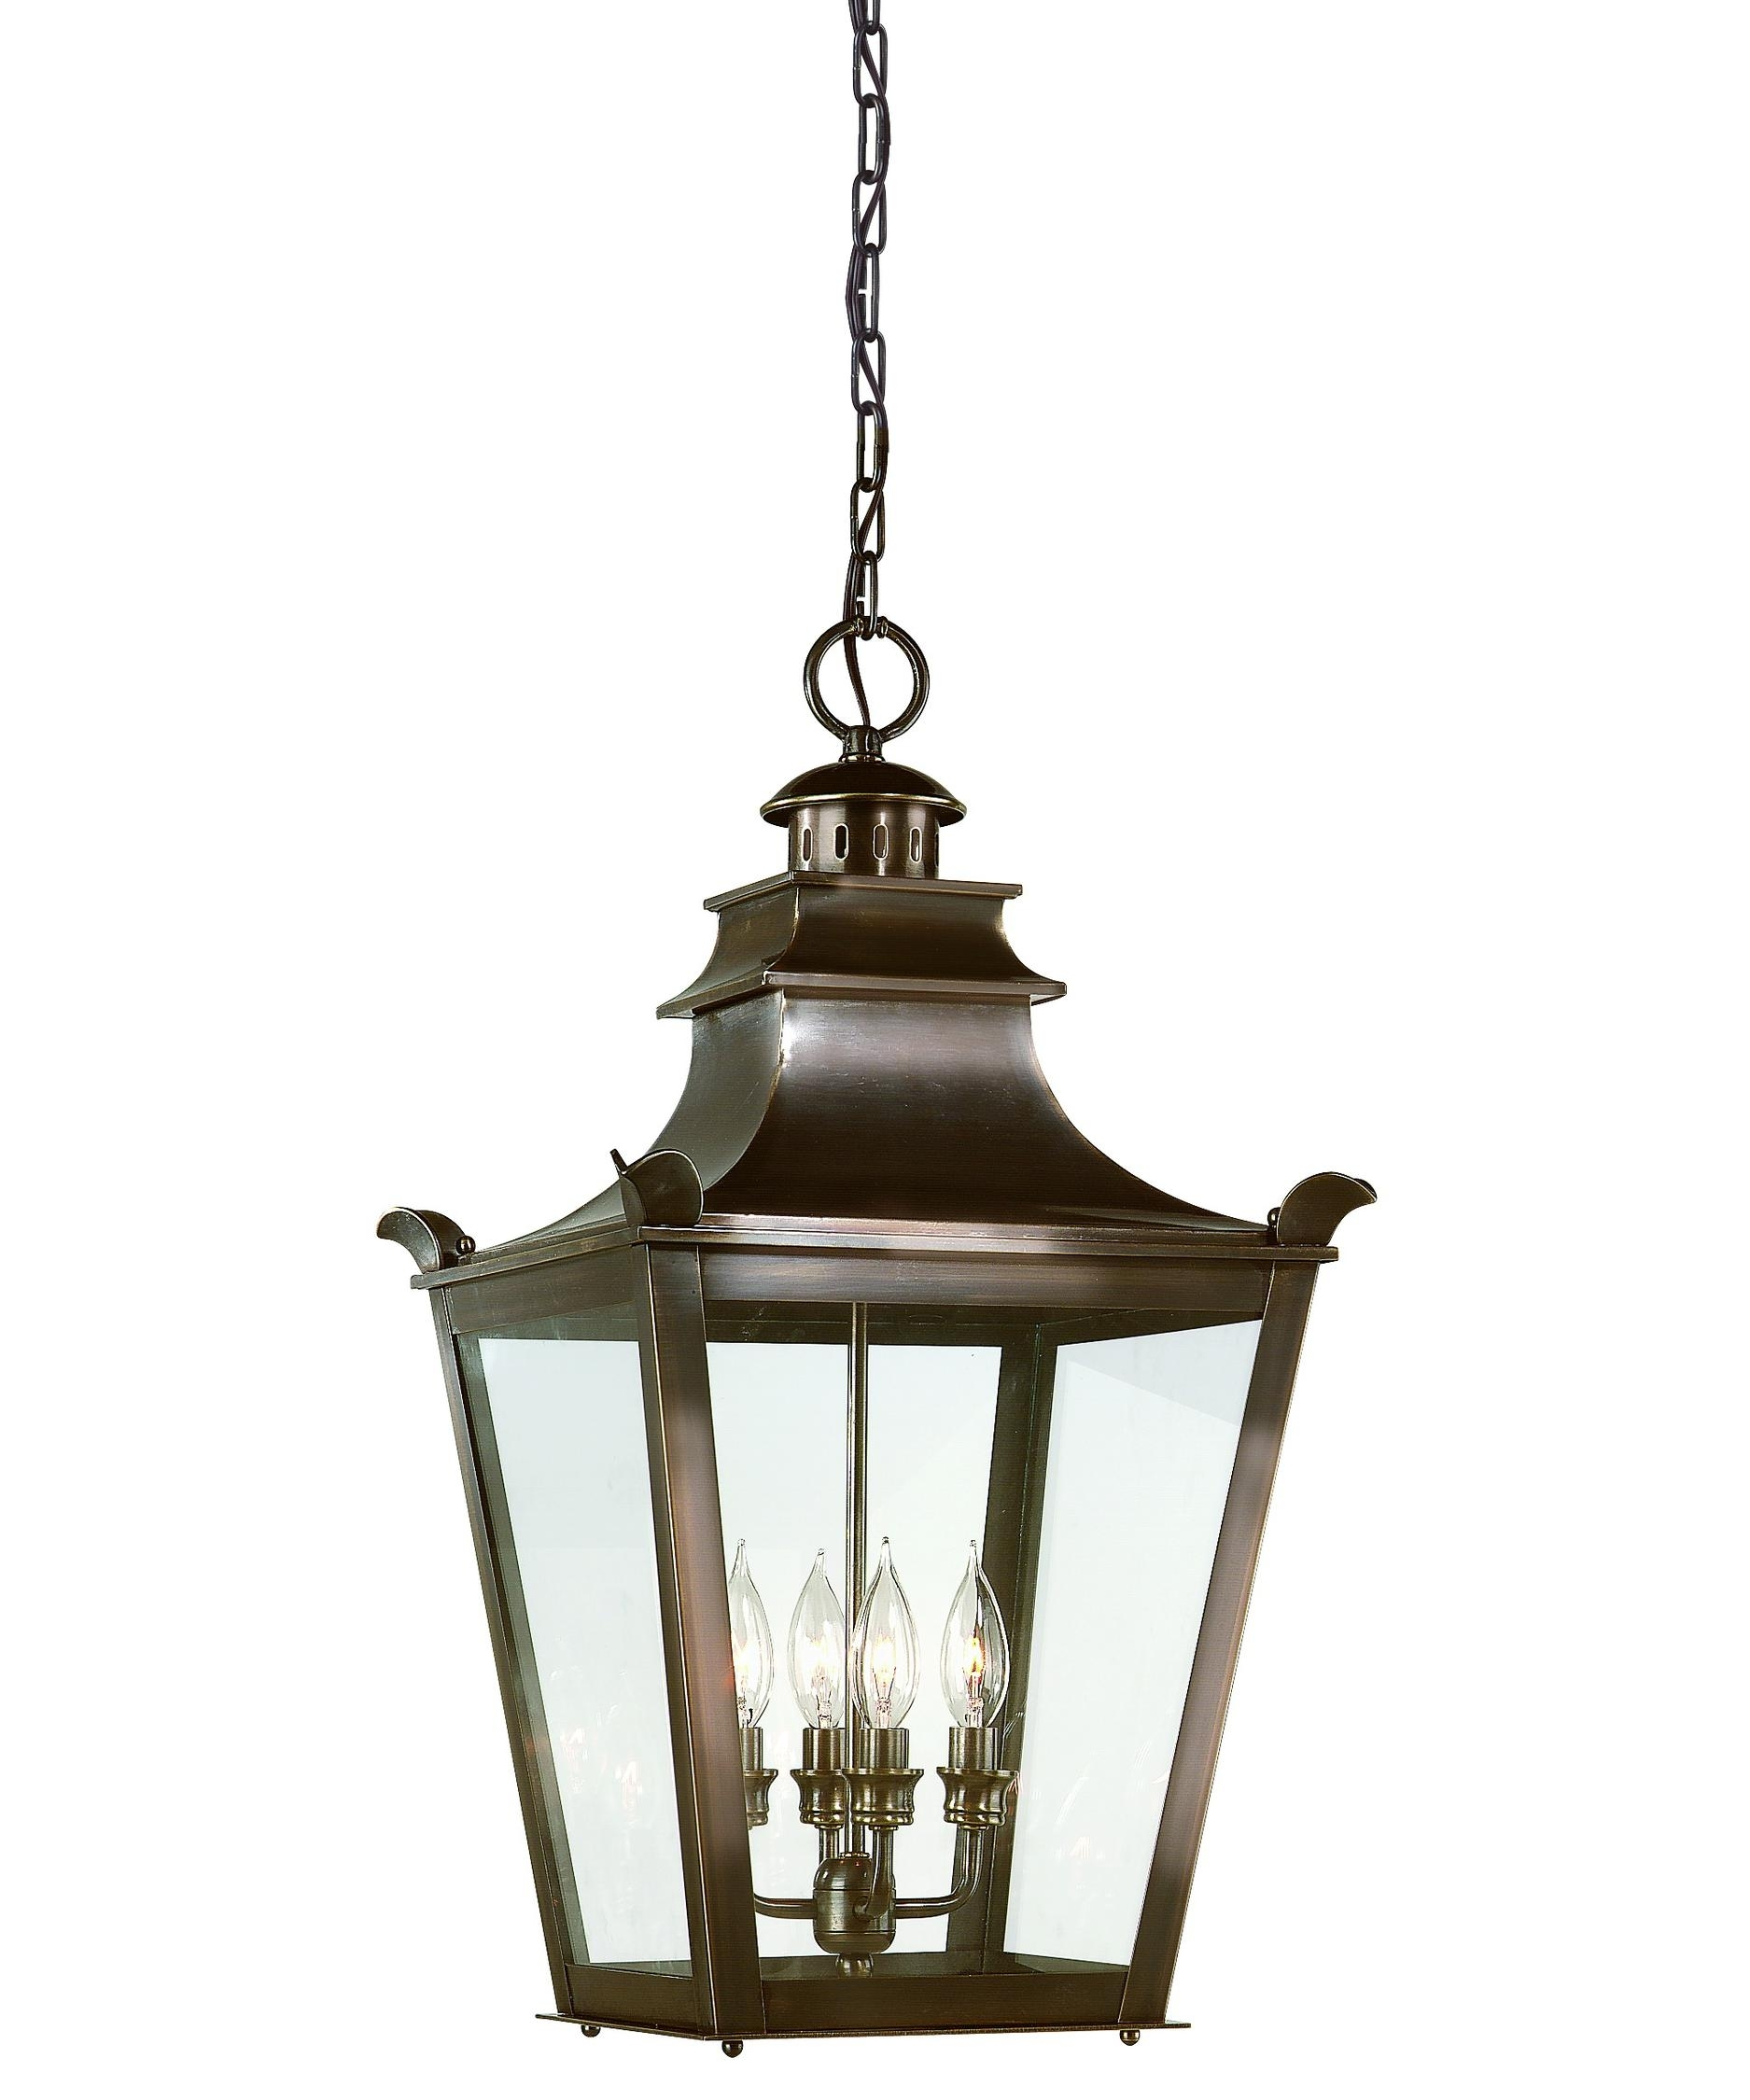 Troy Lighting F9499 Dorchester 14 Inch Wide 4 Light Outdoor Hanging With Regard To Outdoor Hanging Glass Lights (View 5 of 15)